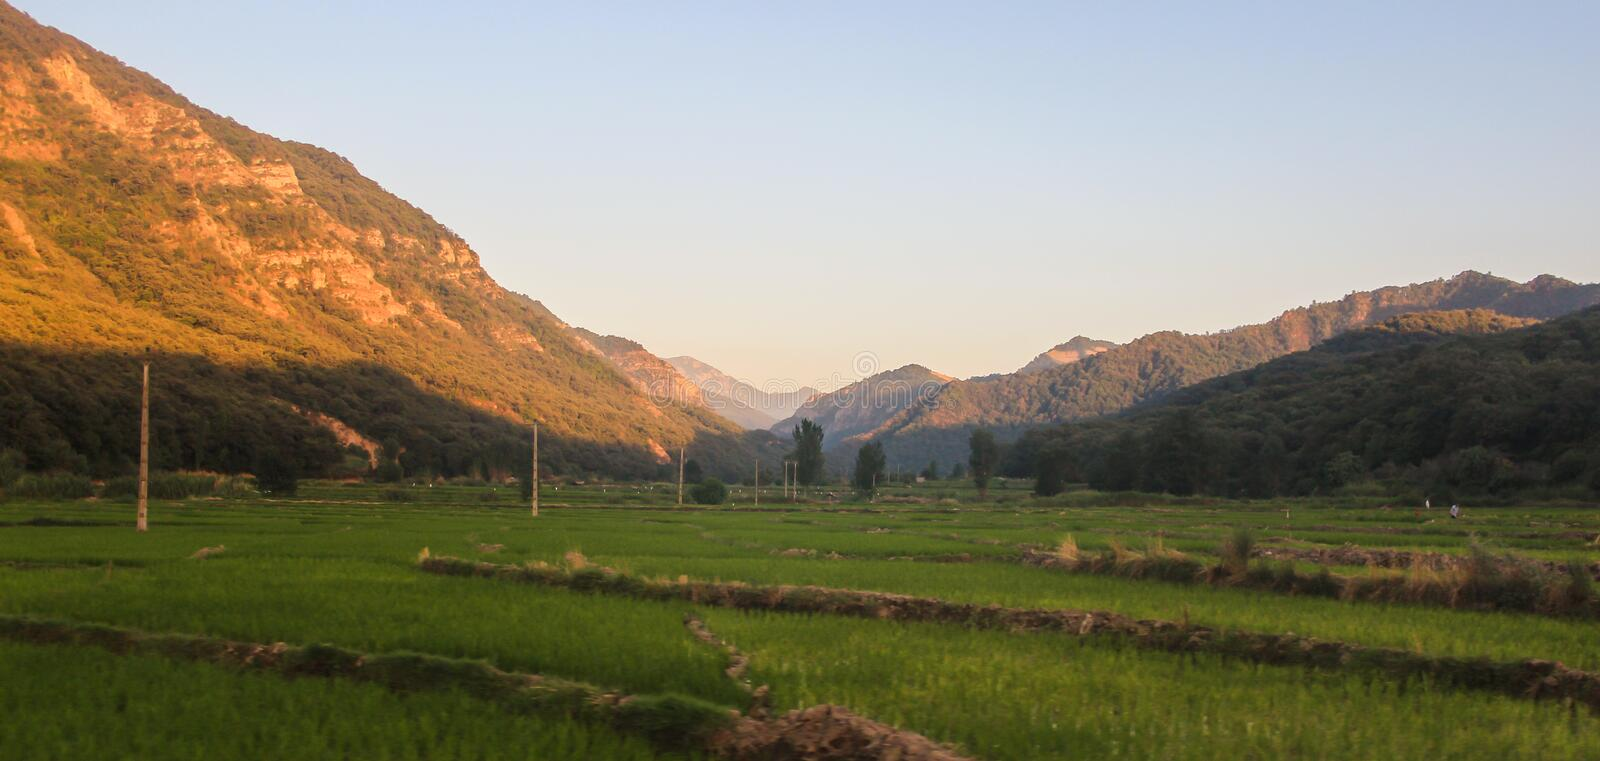 Rice field in Iran with mountains and a valley in the background at sunset time royalty free stock photos